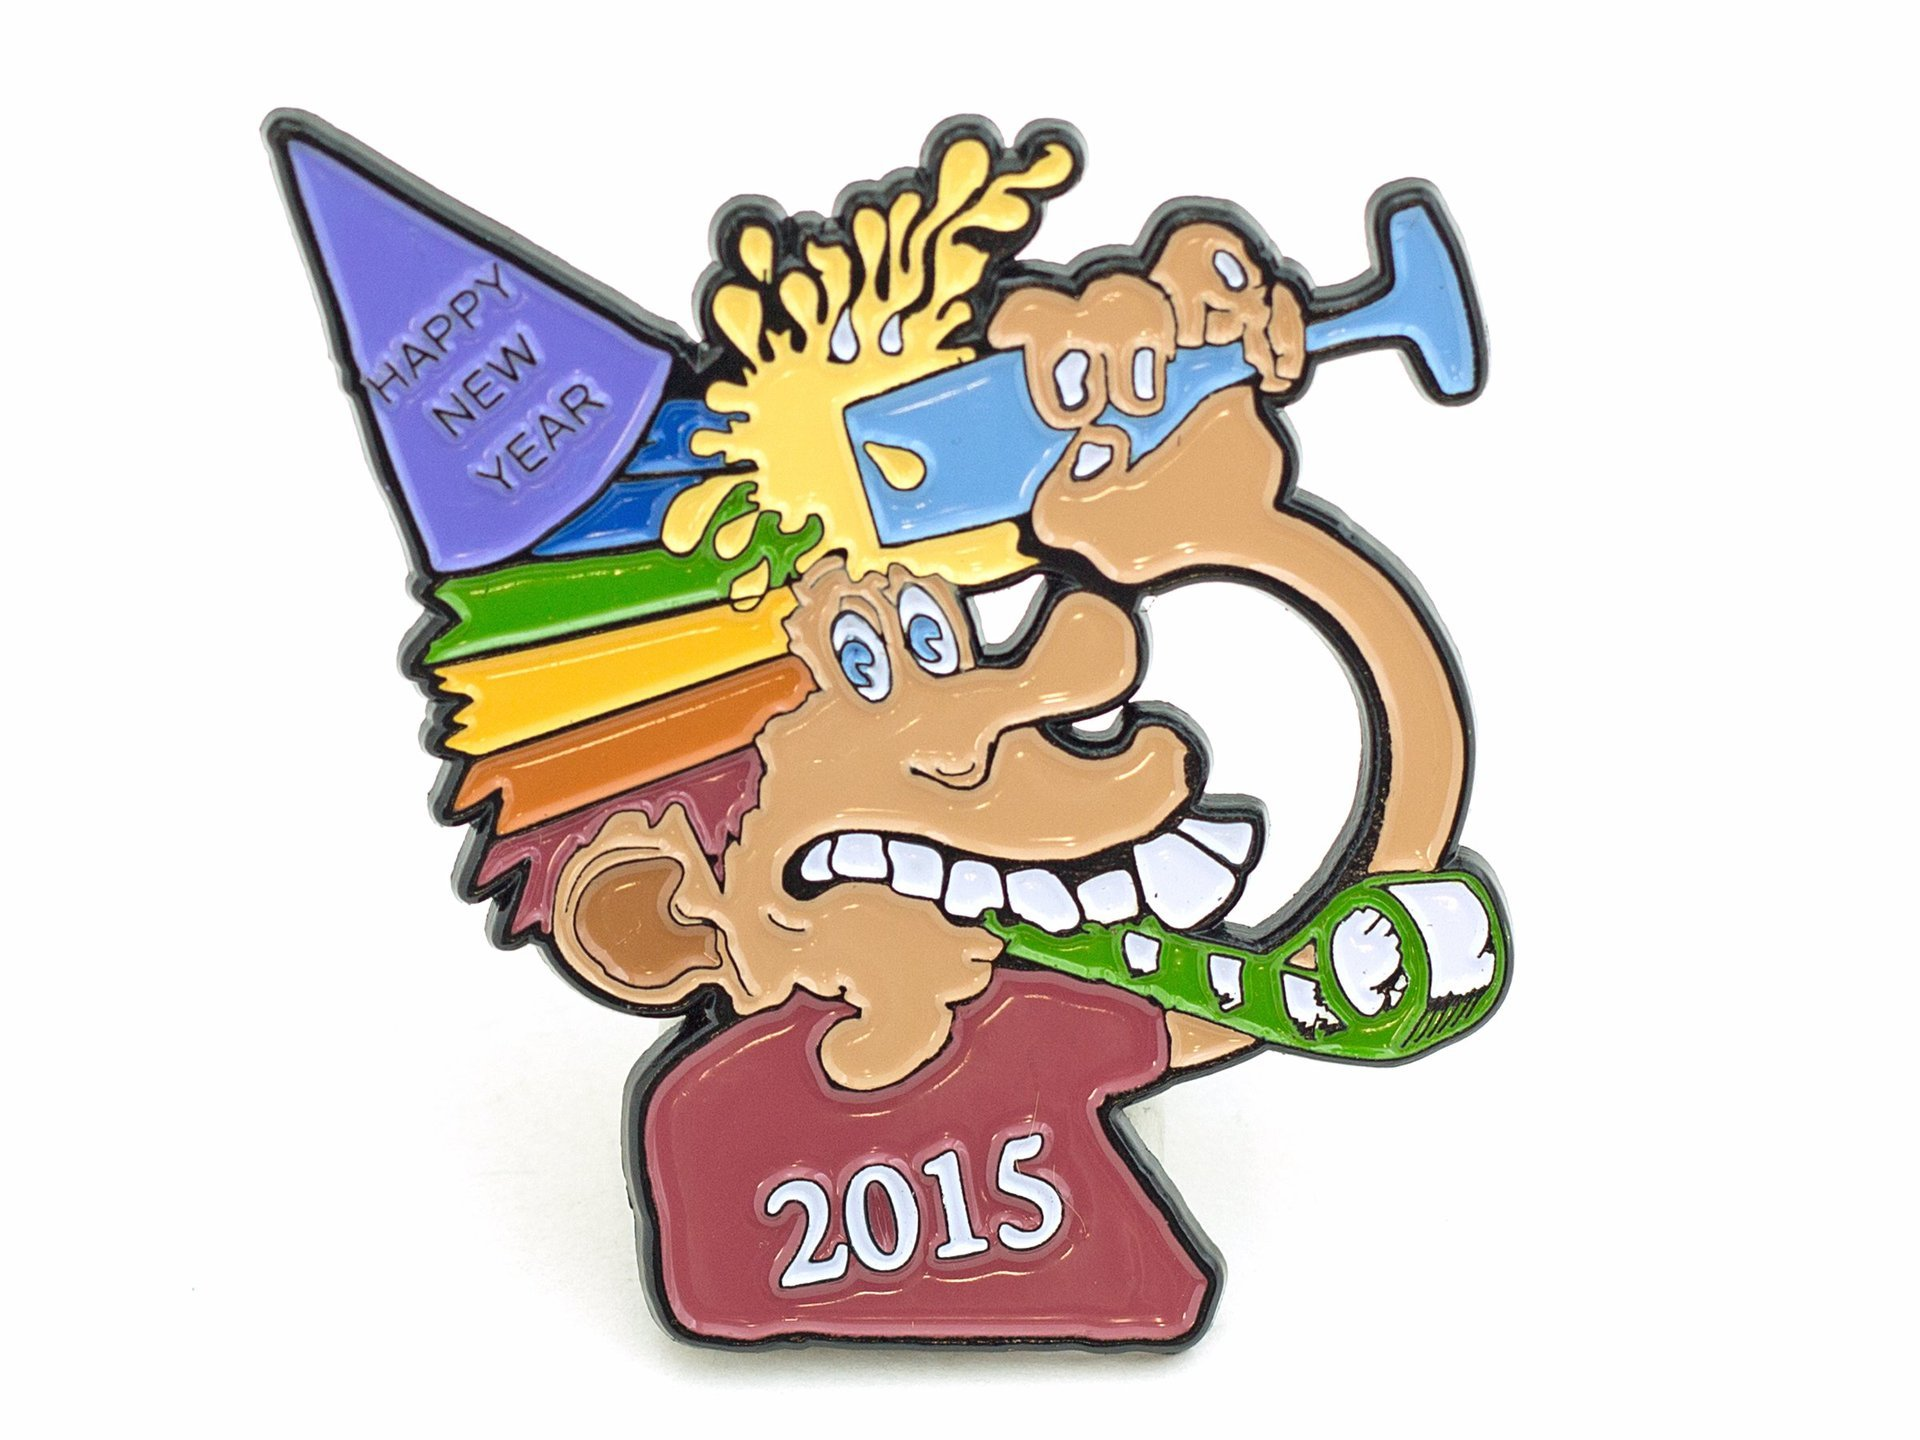 Phil & Friends New Years 2015 Pin